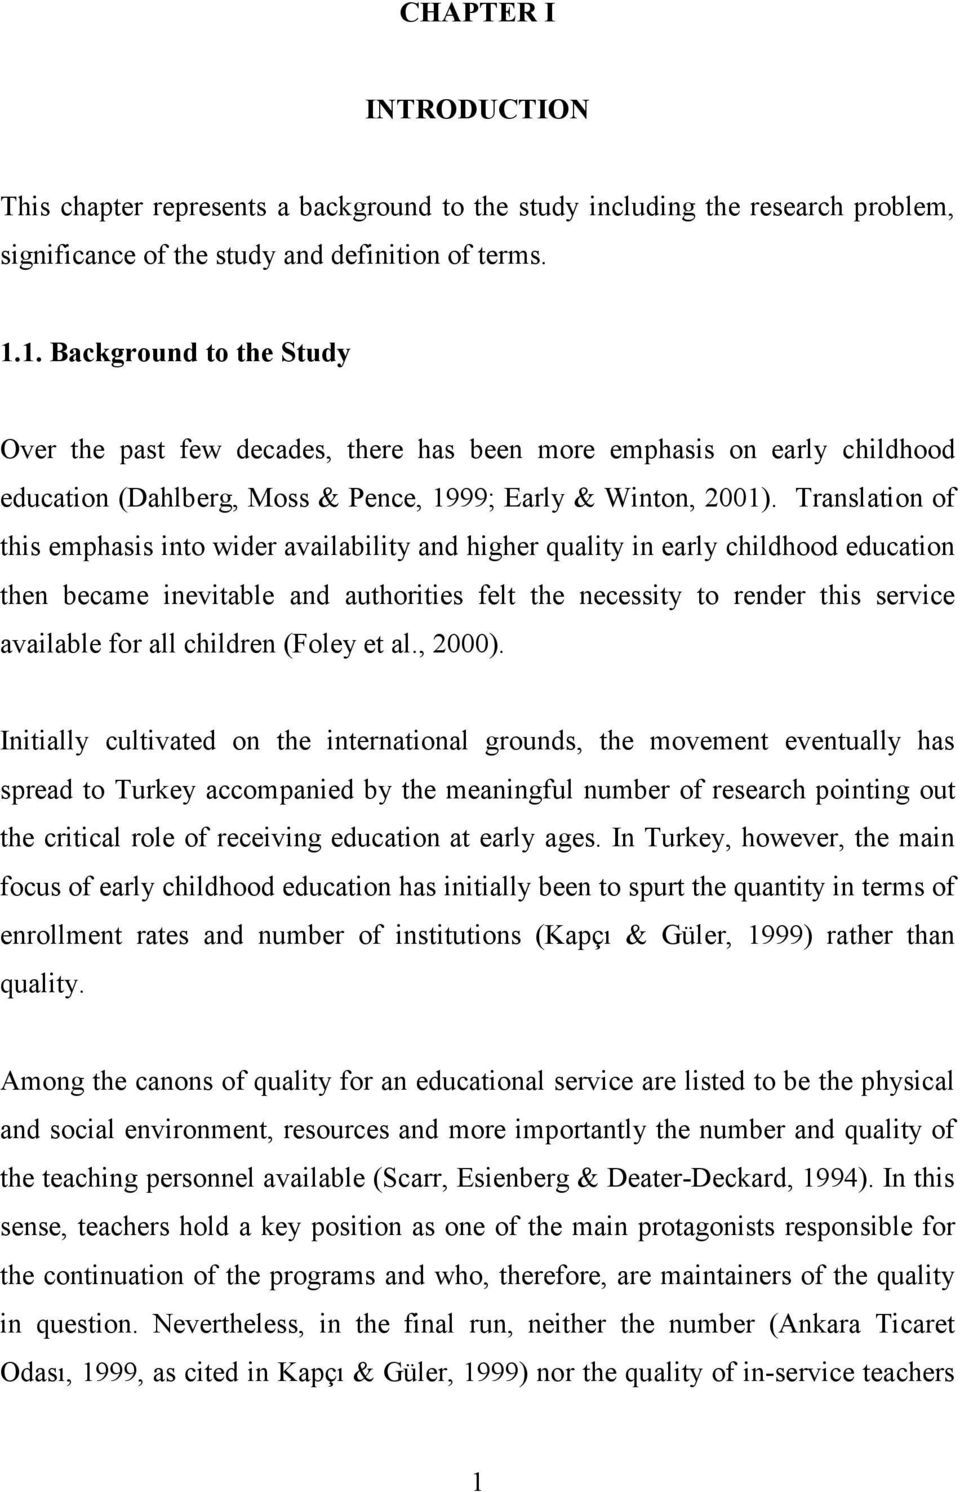 Translation of this emphasis into wider availability and higher quality in early childhood education then became inevitable and authorities felt the necessity to render this service available for all